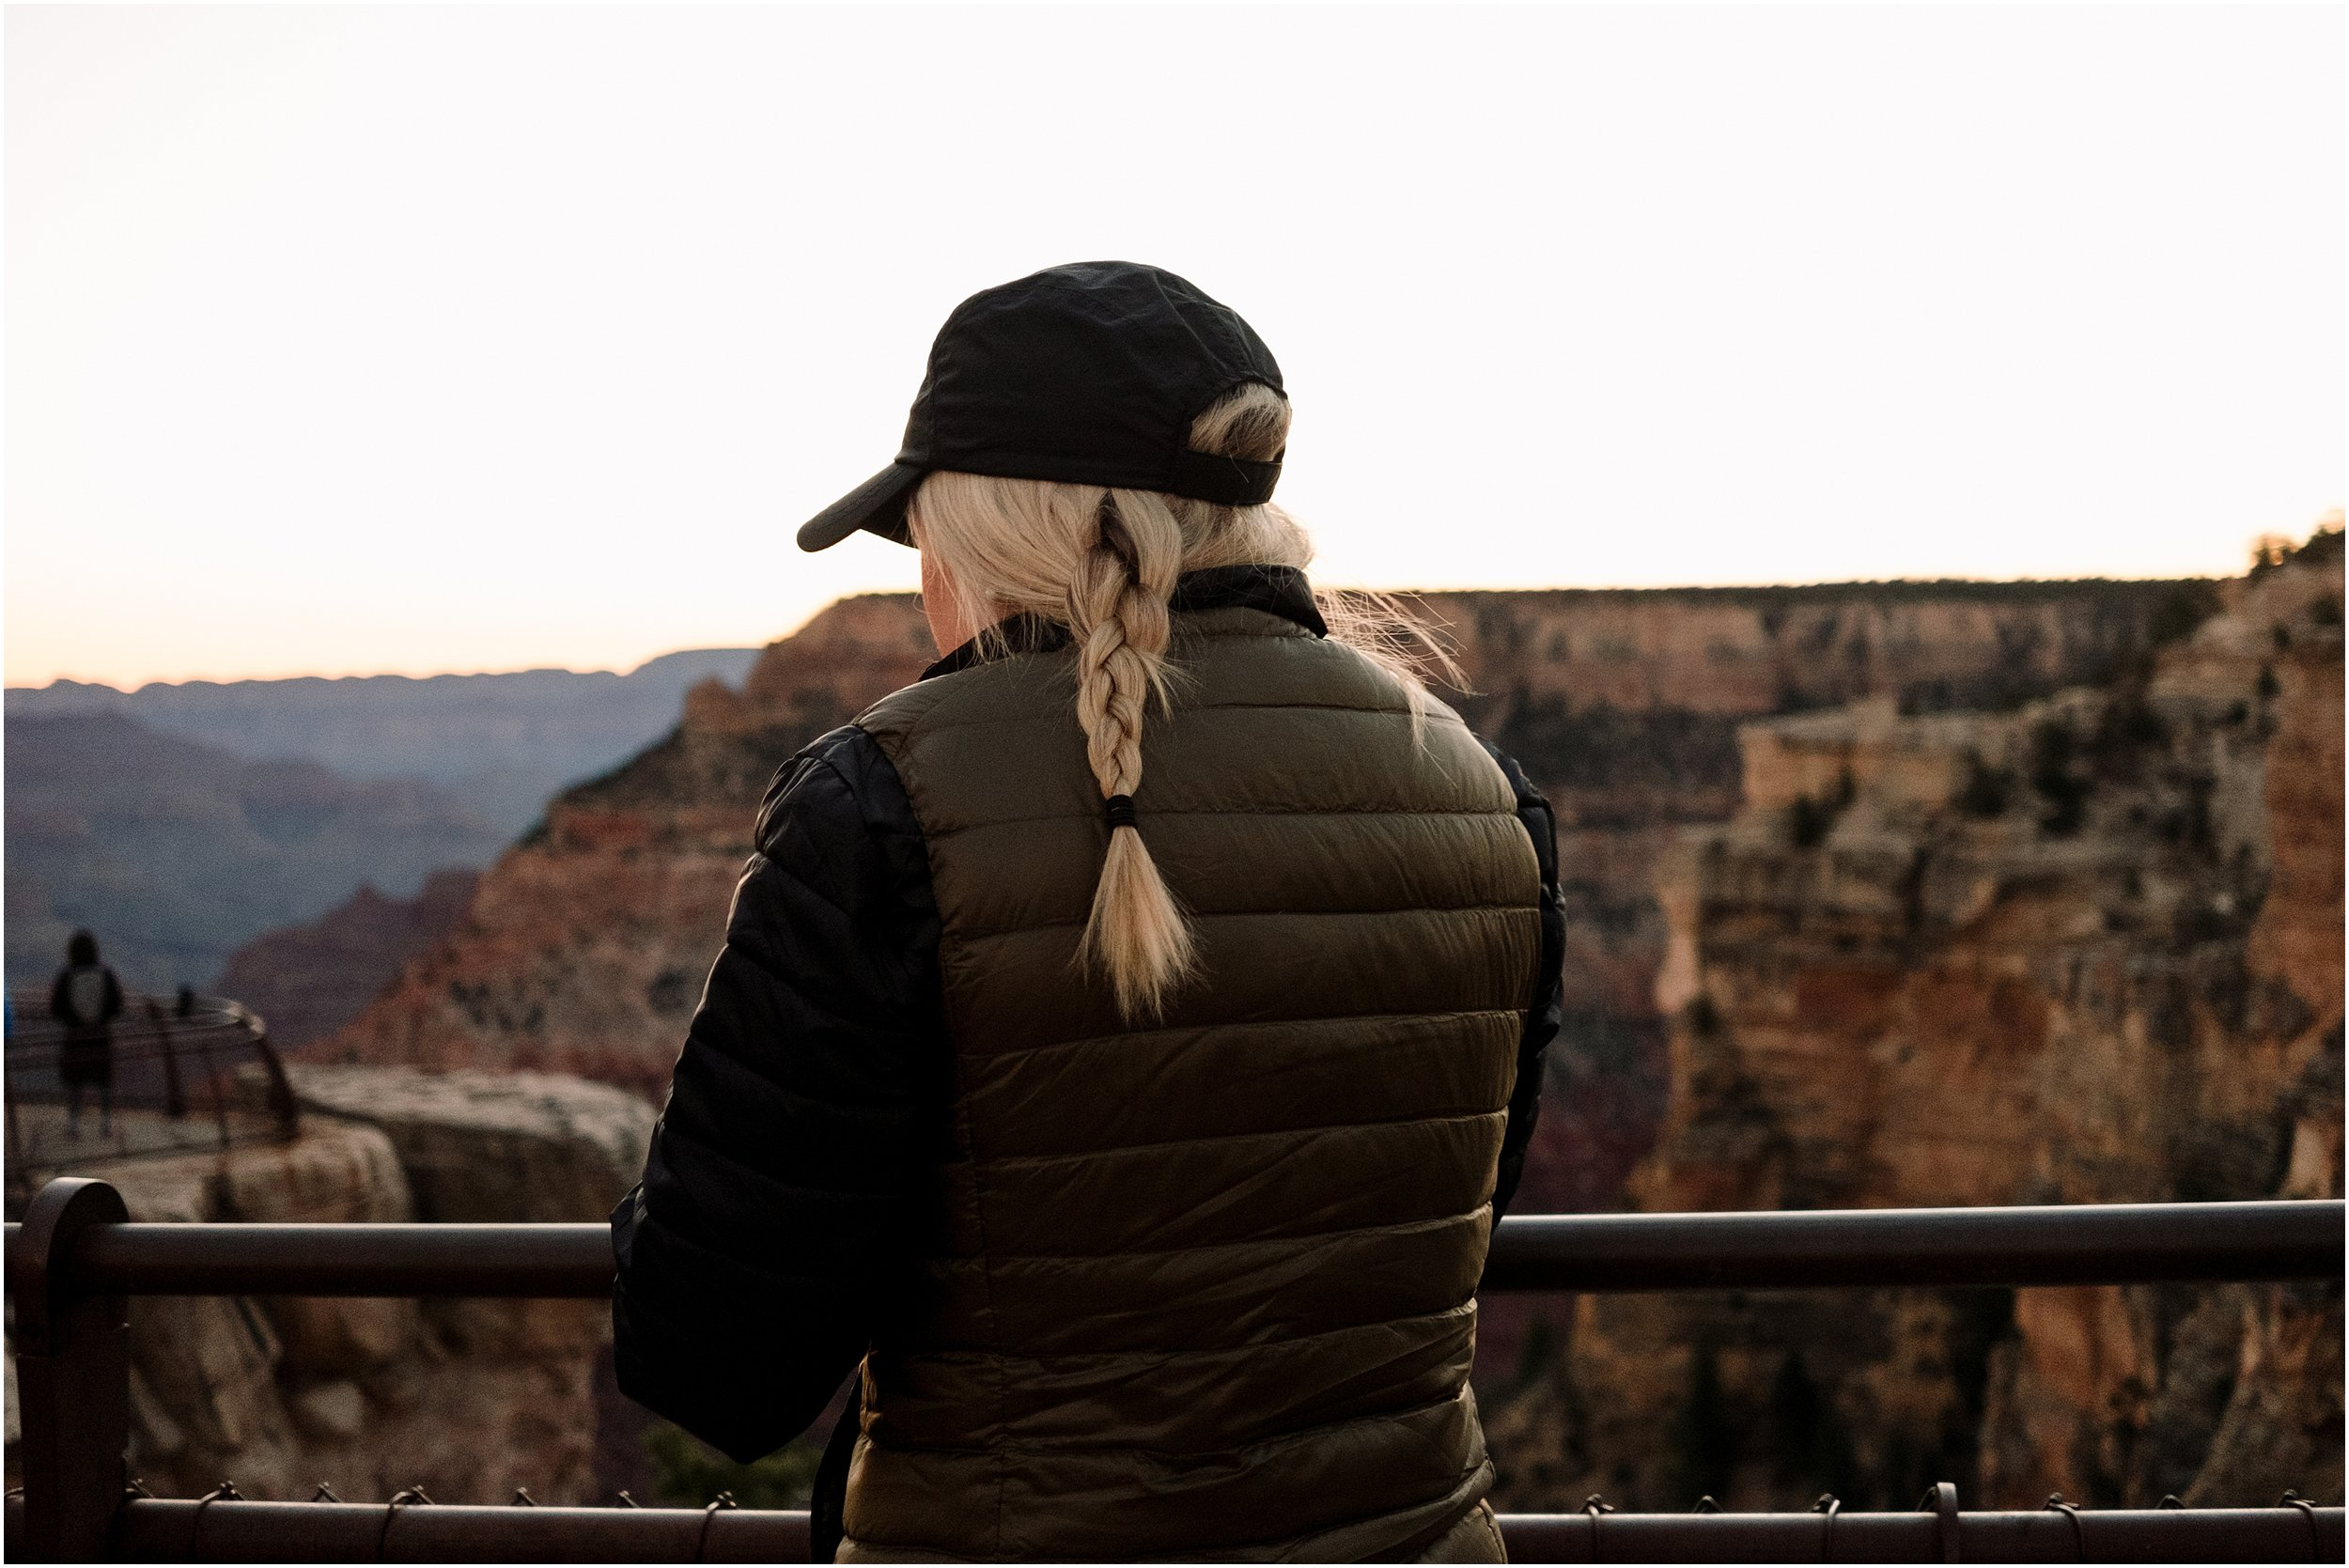 hannah leigh photography Grand Canyon Backpacking Trip_2442.jpg